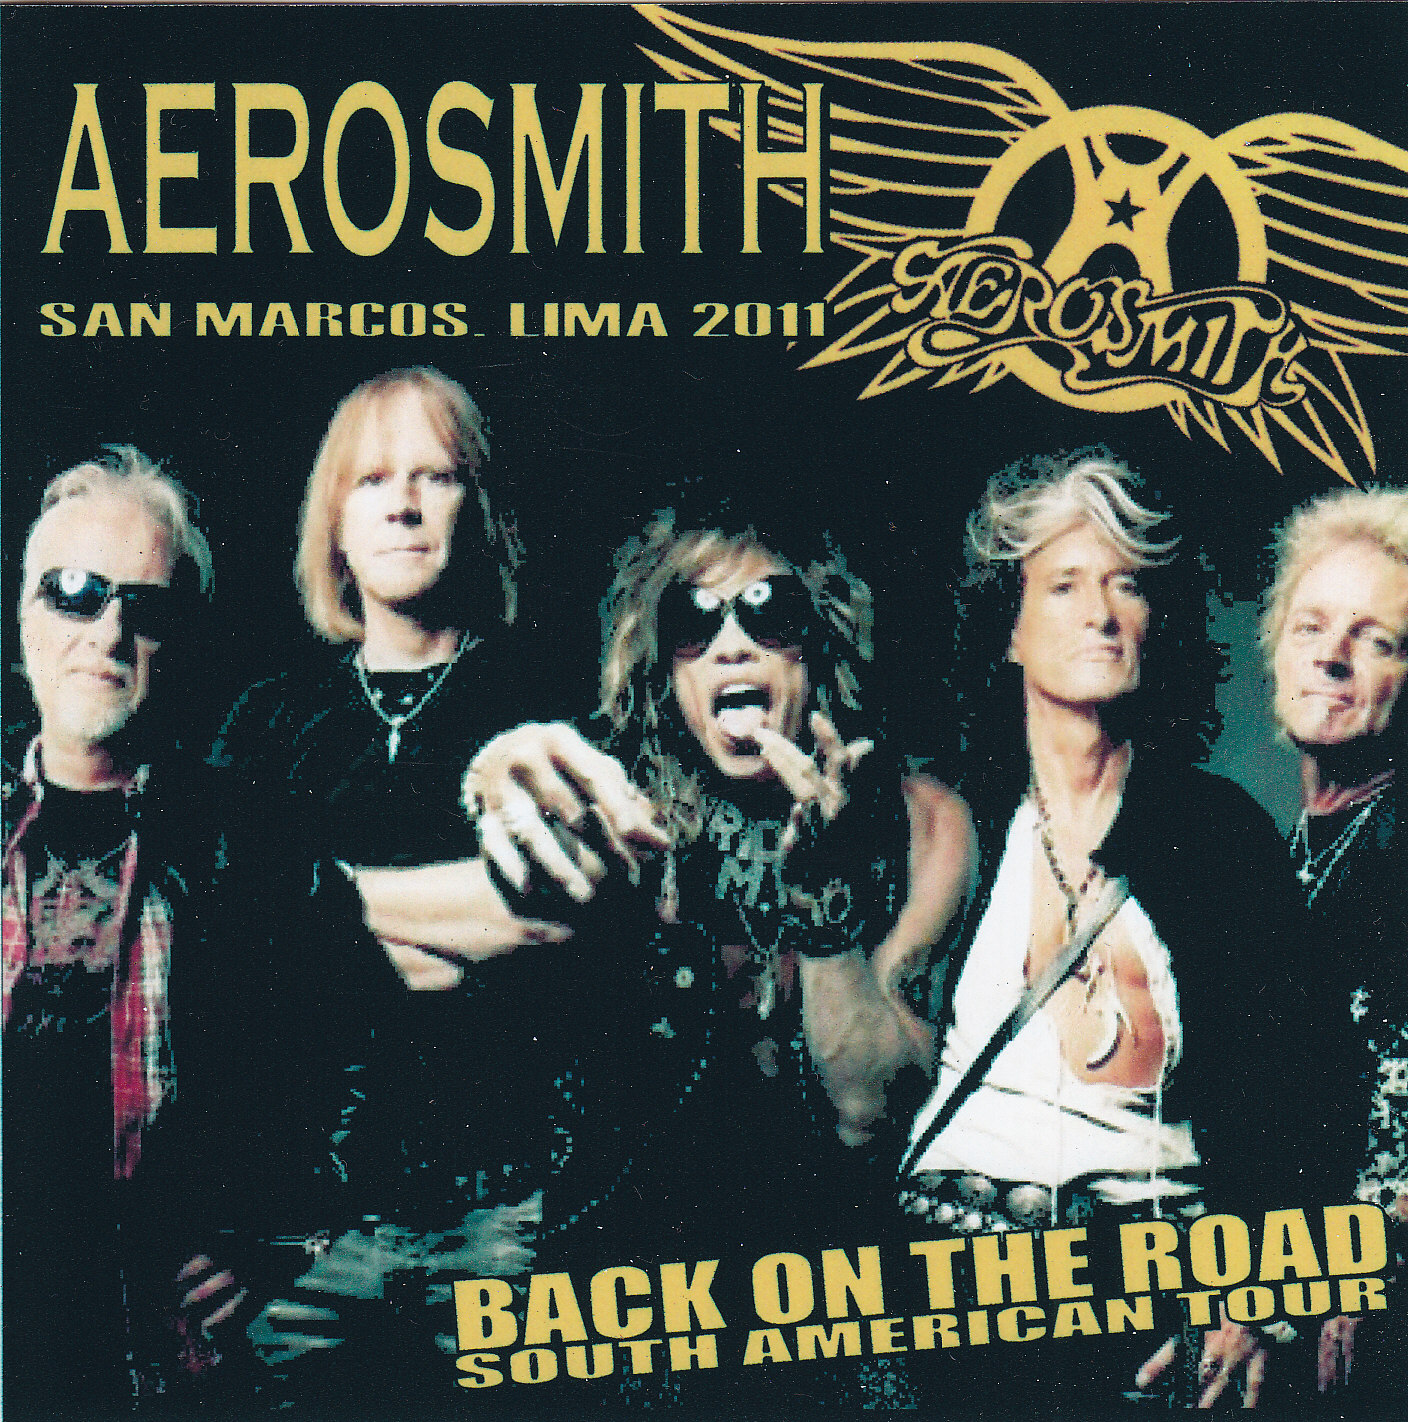 Aerosmith Bootlegs Cover Arts San Marcos Lima 2011